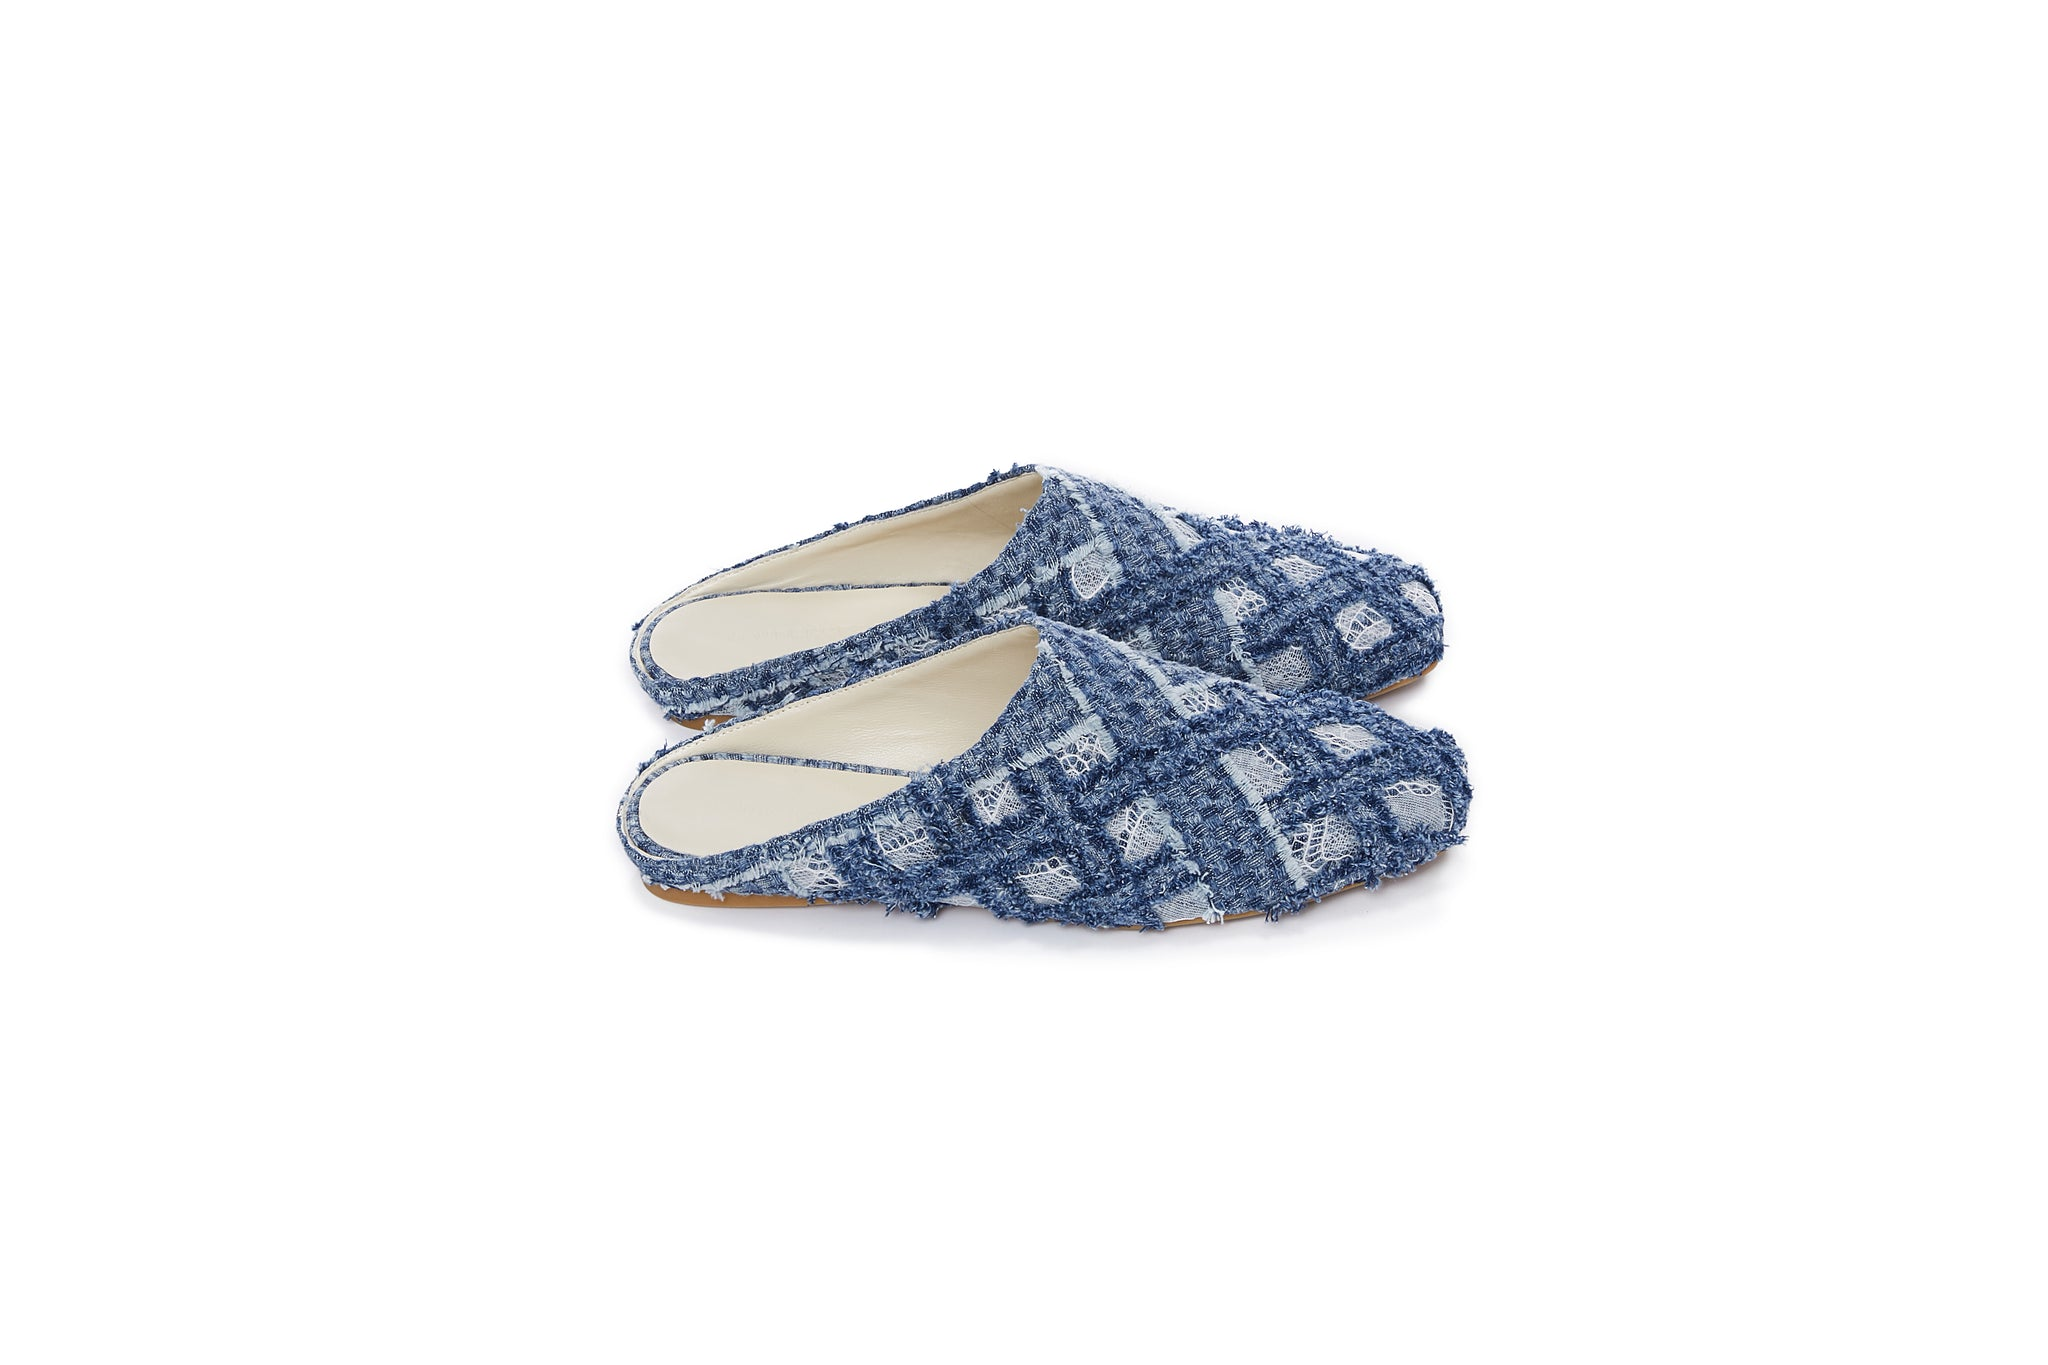 Handwoven Denim Lace Sandals, Light Blue